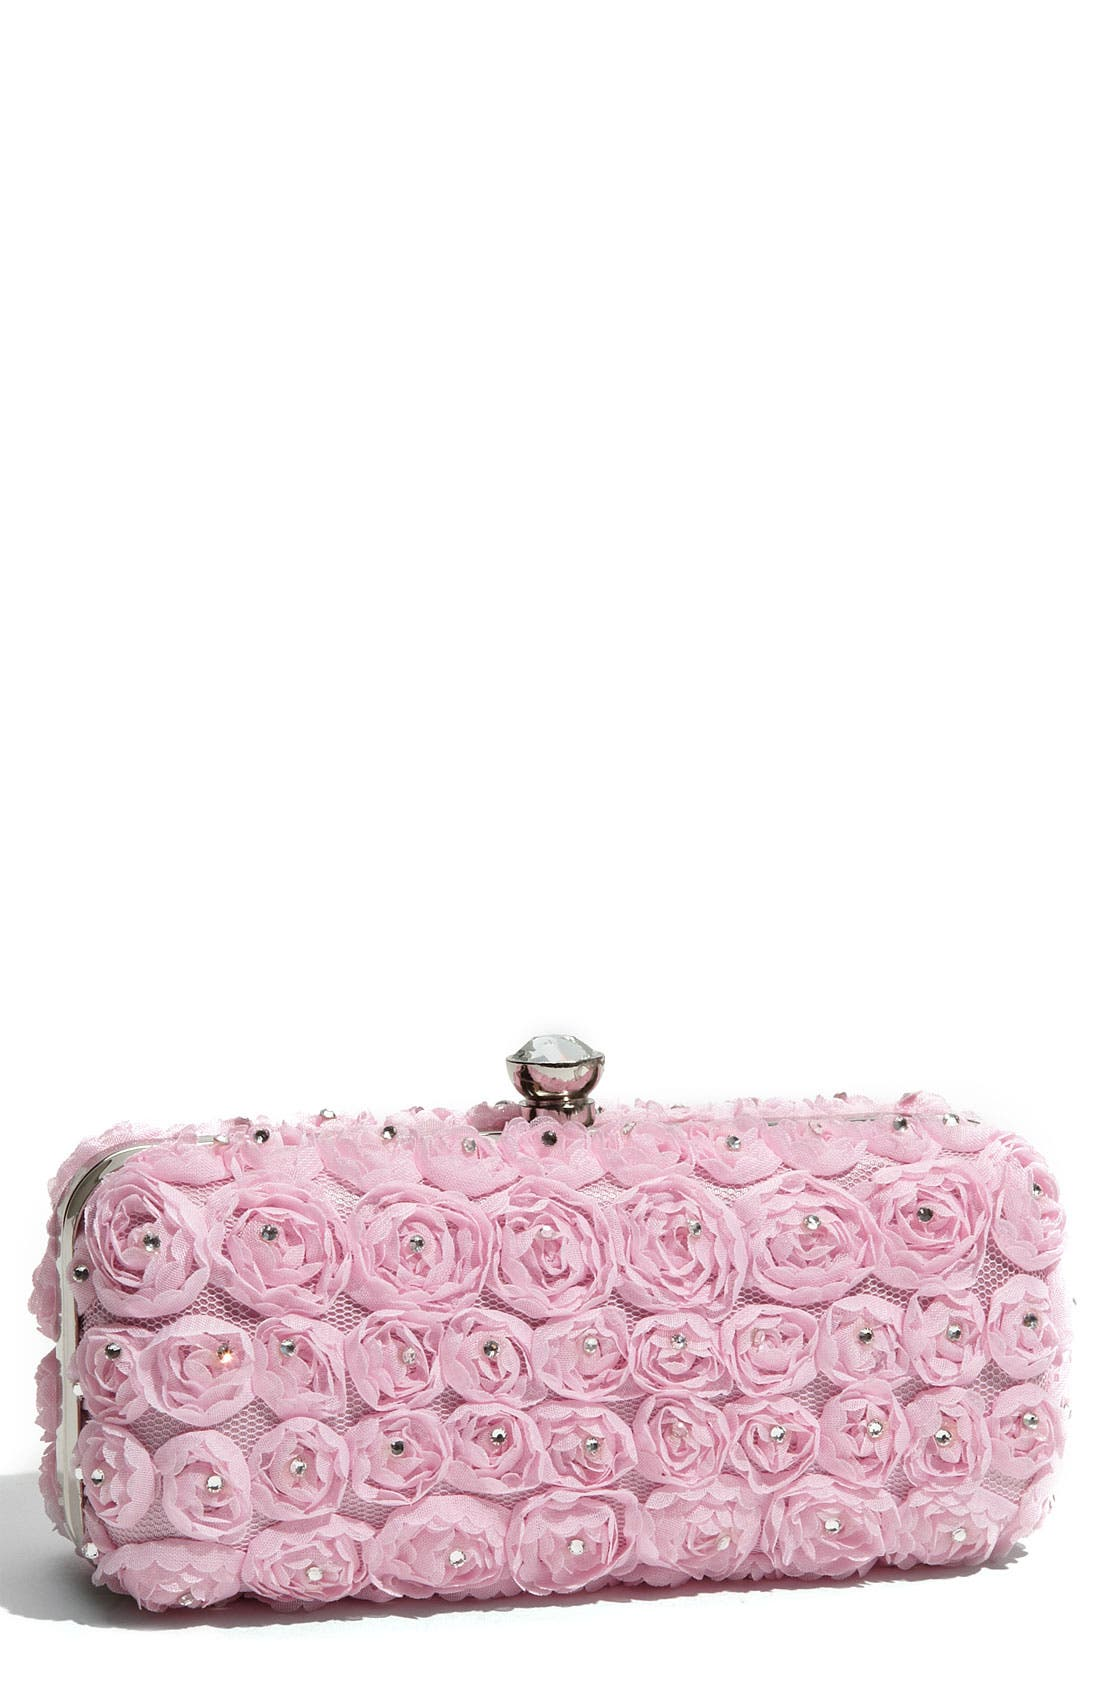 Alternate Image 1 Selected - Natasha 'Rose' Minaudiere Box Clutch